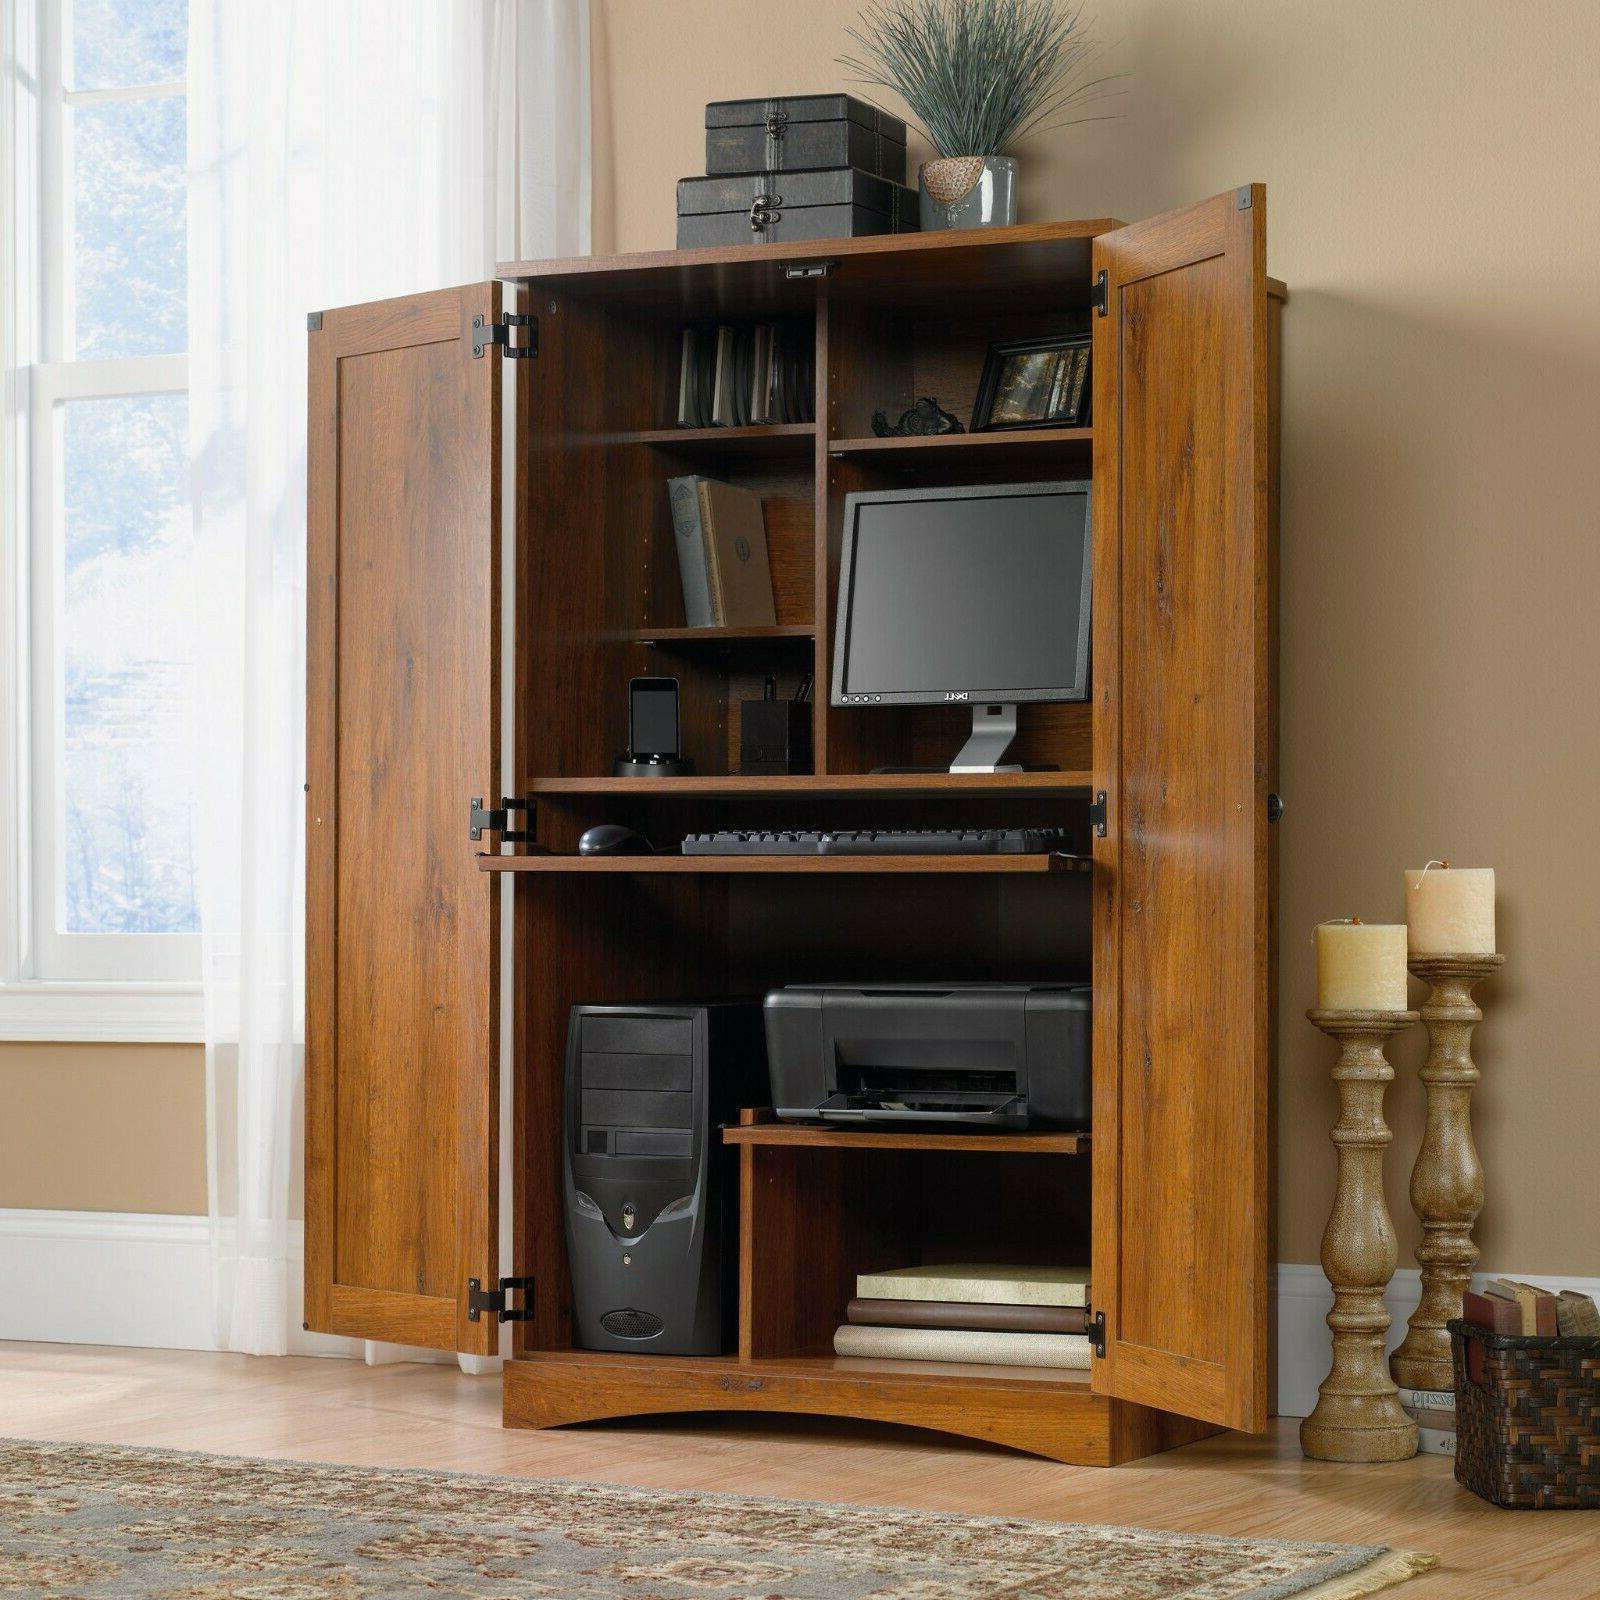 Enclosed Computer Armoire Cabinet Desk Home Office Furniture